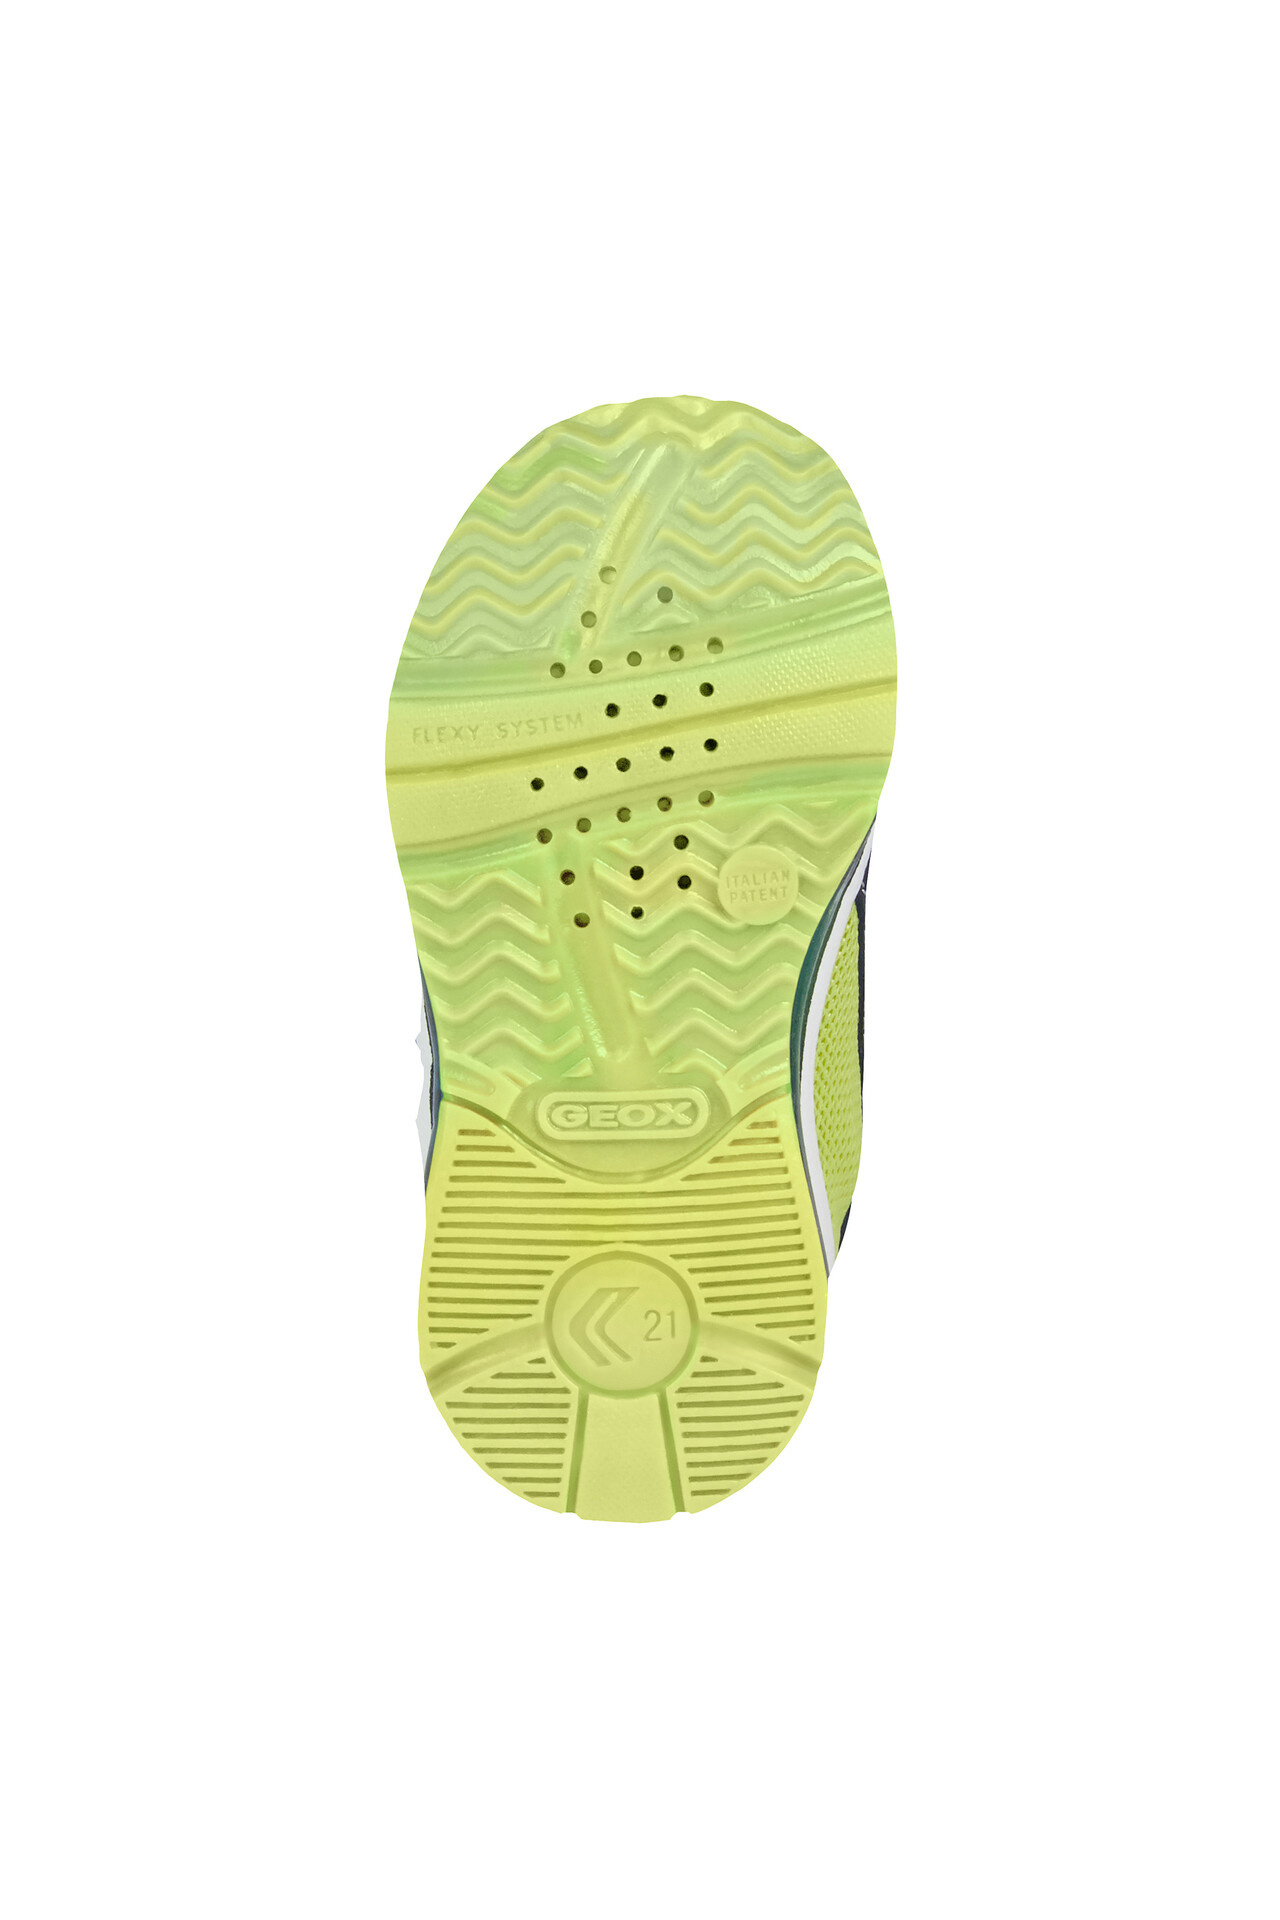 Geox Todo Navy Lime